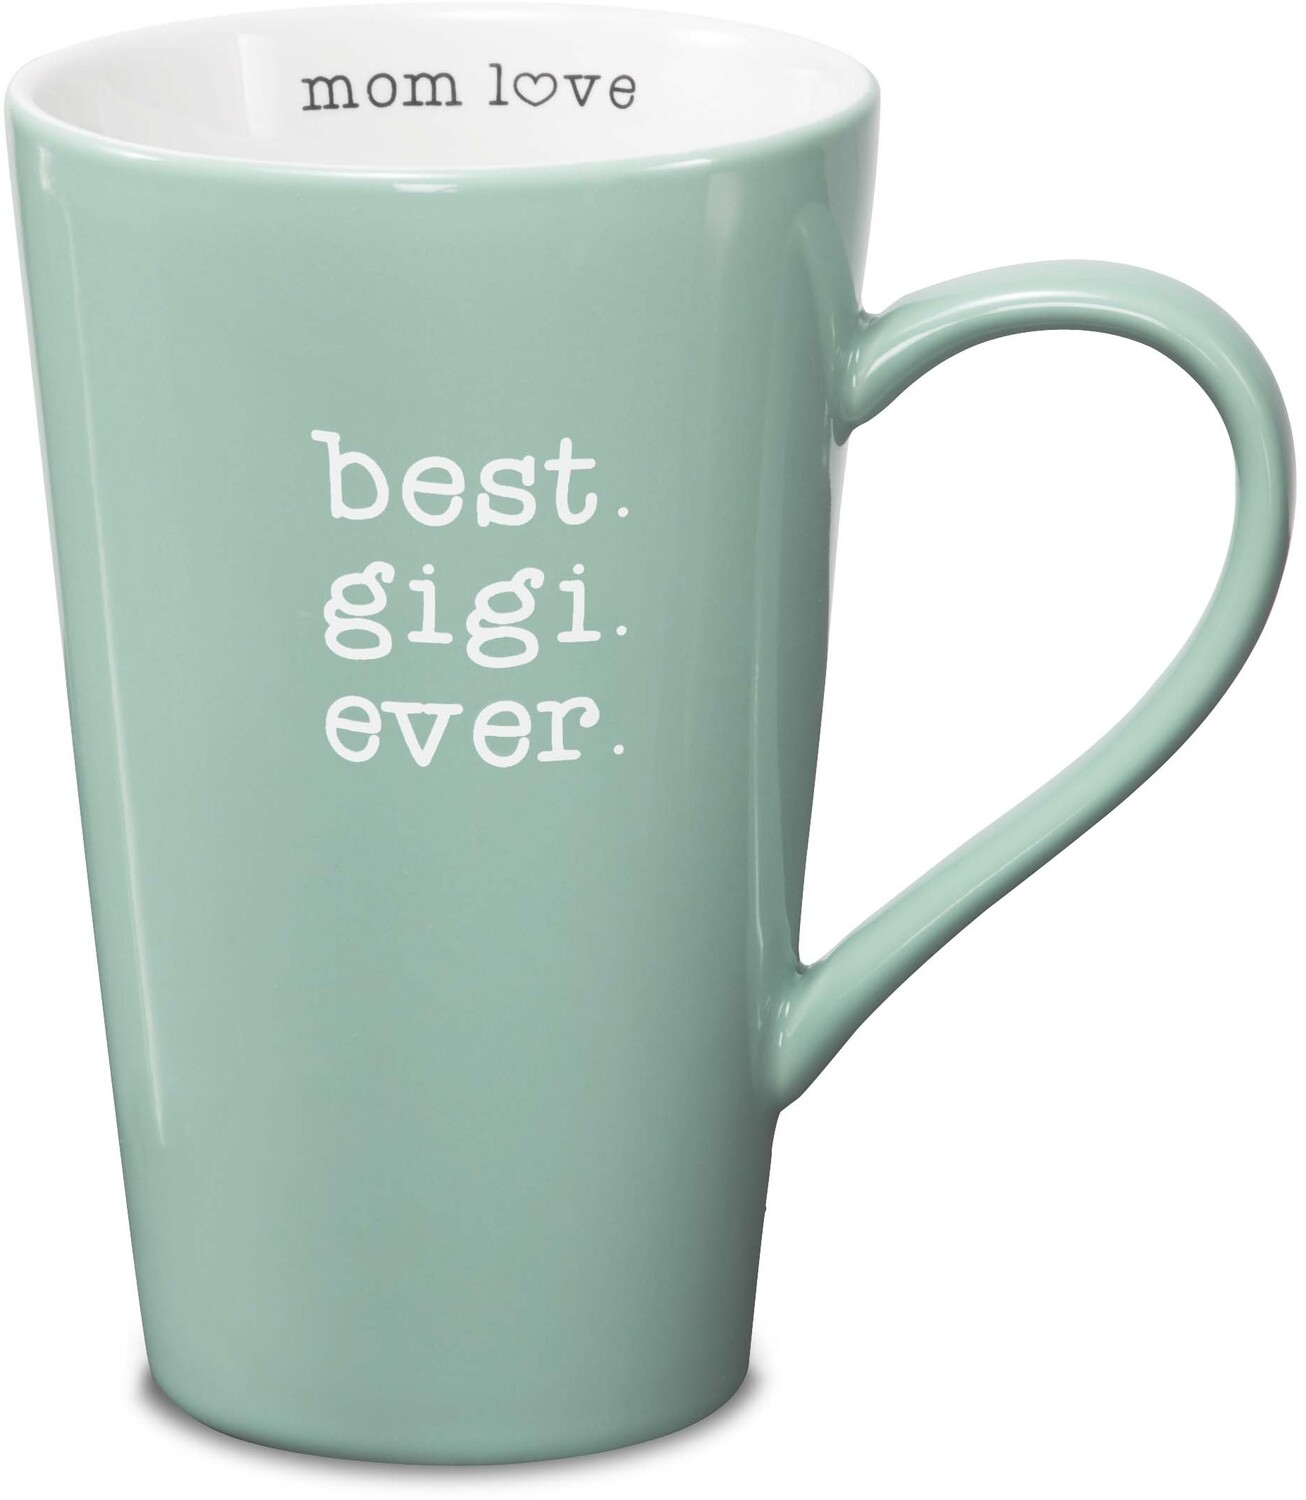 Best Gigi by Mom Love - Best Gigi - 18 oz Latte Cup